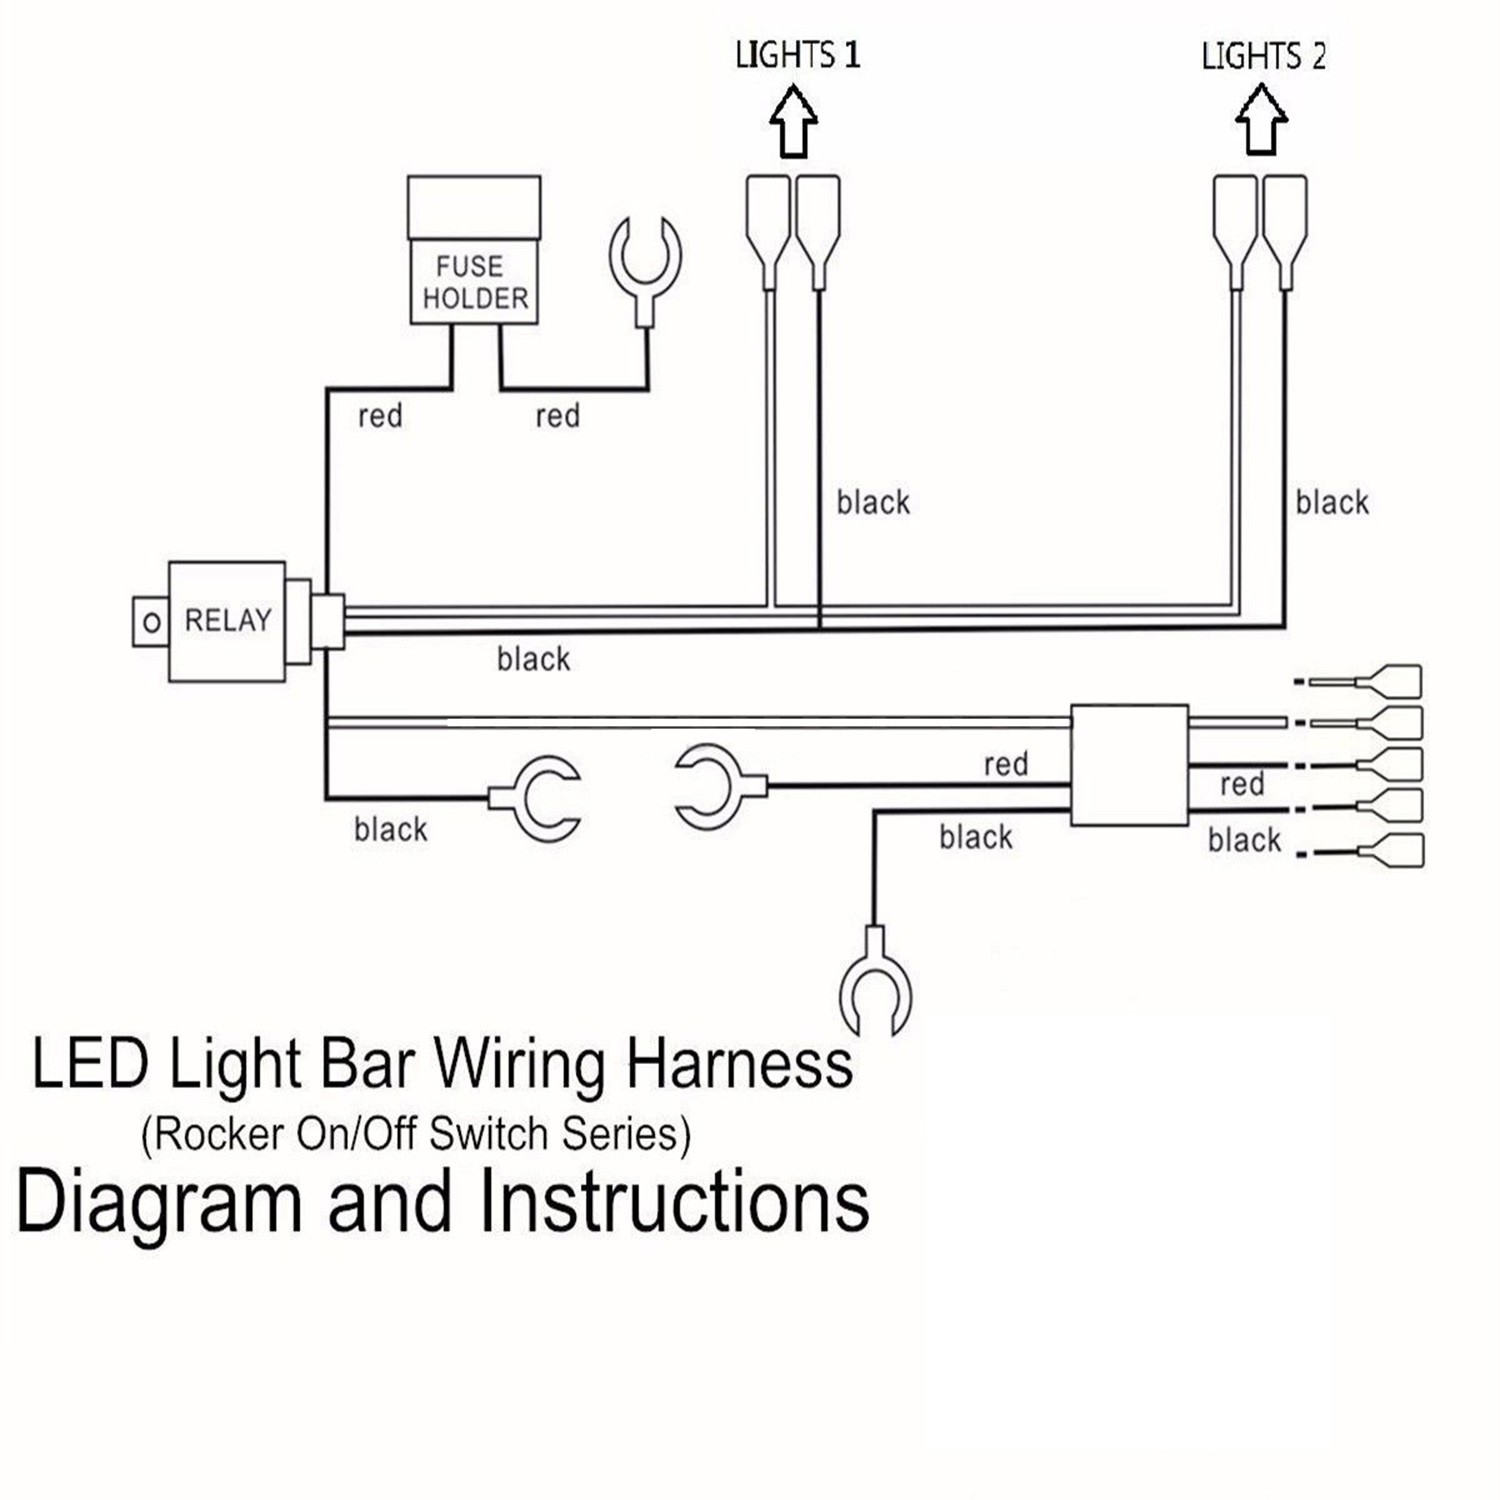 Wiring Diagram for Whelen Edge 9000 Save Whelen Edge 9000 50 Amber 10 Strobe 8 Halogen